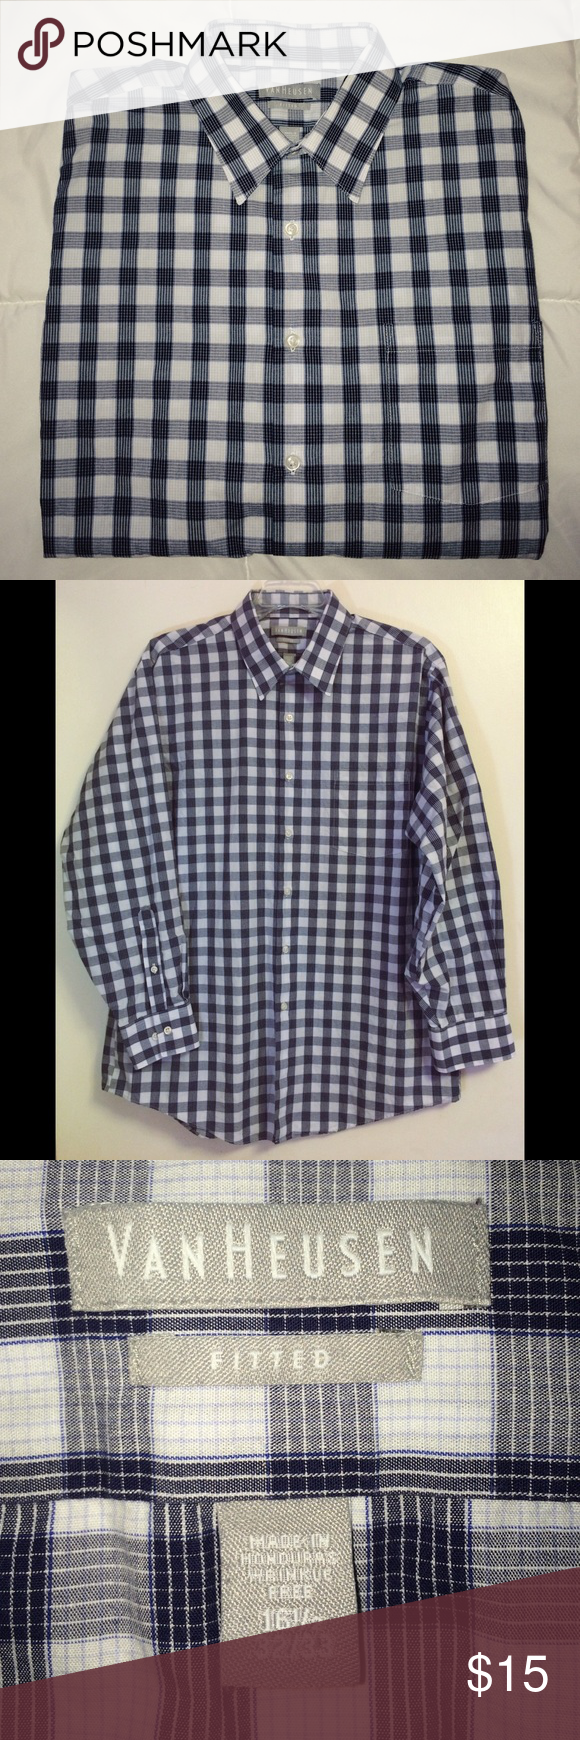 Men's Van Heusen Fitted Dress Shirt Men's Van Heusen Long Sleeve Button Up Dress Shirt. Plaid. Size 16.5 32/33. Fitted. Wrinkle Free Fabric. Perfect Condition. Van Heusen Shirts Dress Shirts